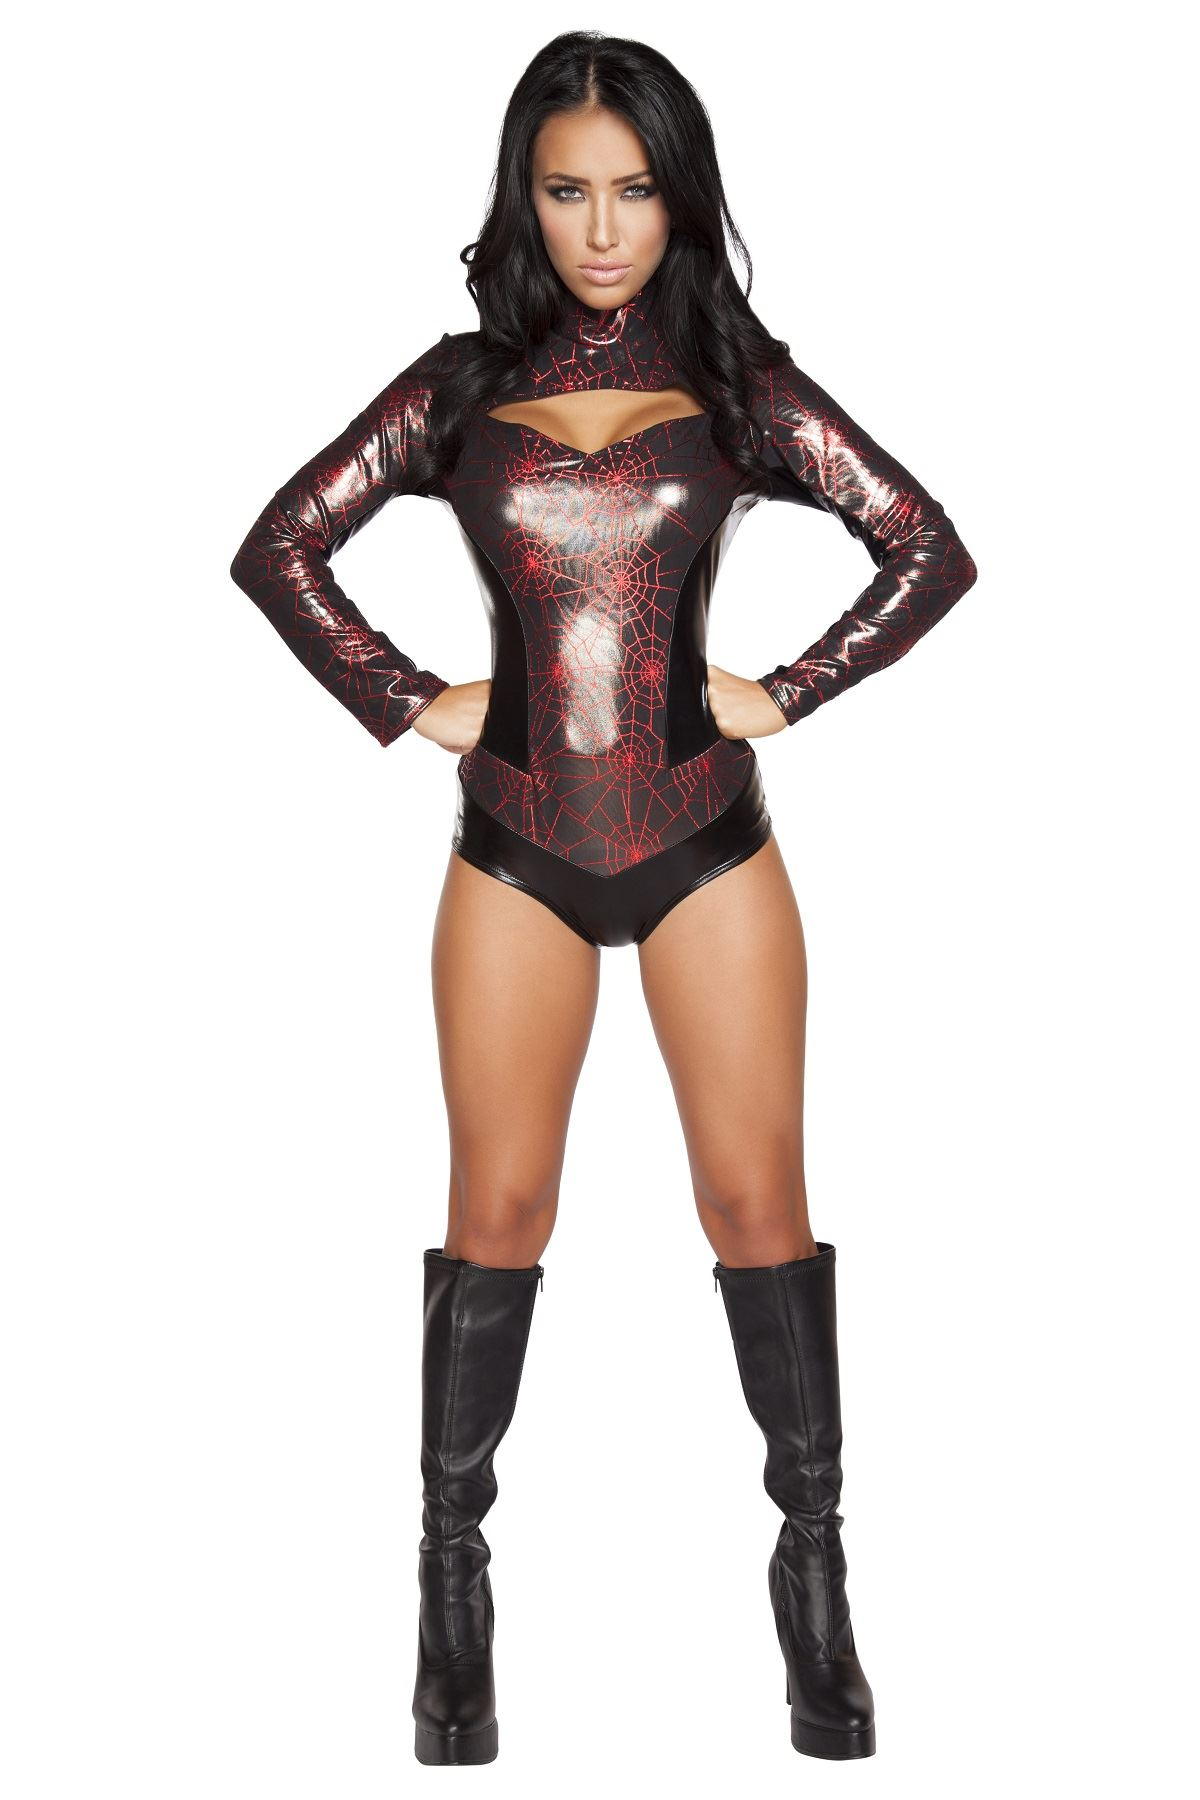 Adult Spider Print Webbed Warrior Woman Costume ...  sc 1 st  The Costume Land & Adult Spider Print Webbed Warrior Woman Costume | $68.99 | The ...